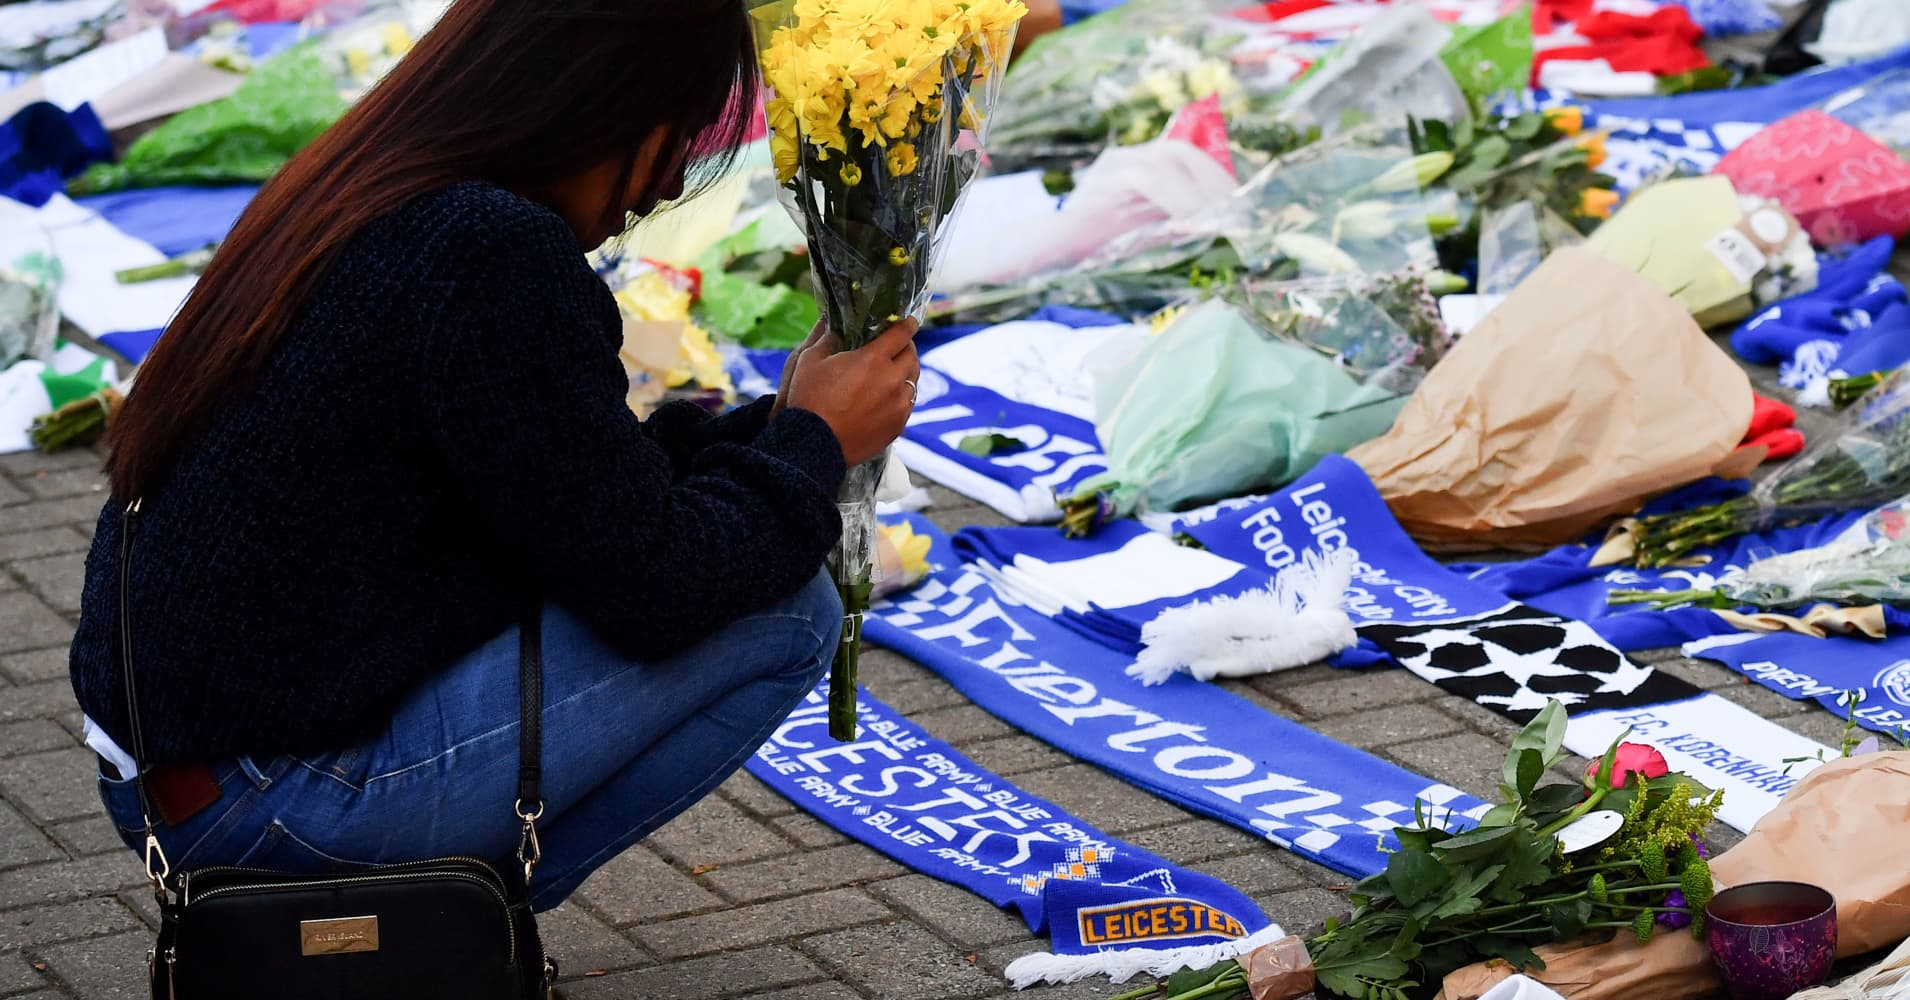 Leicester City soccer club owner Vichai killed in helicopter crash